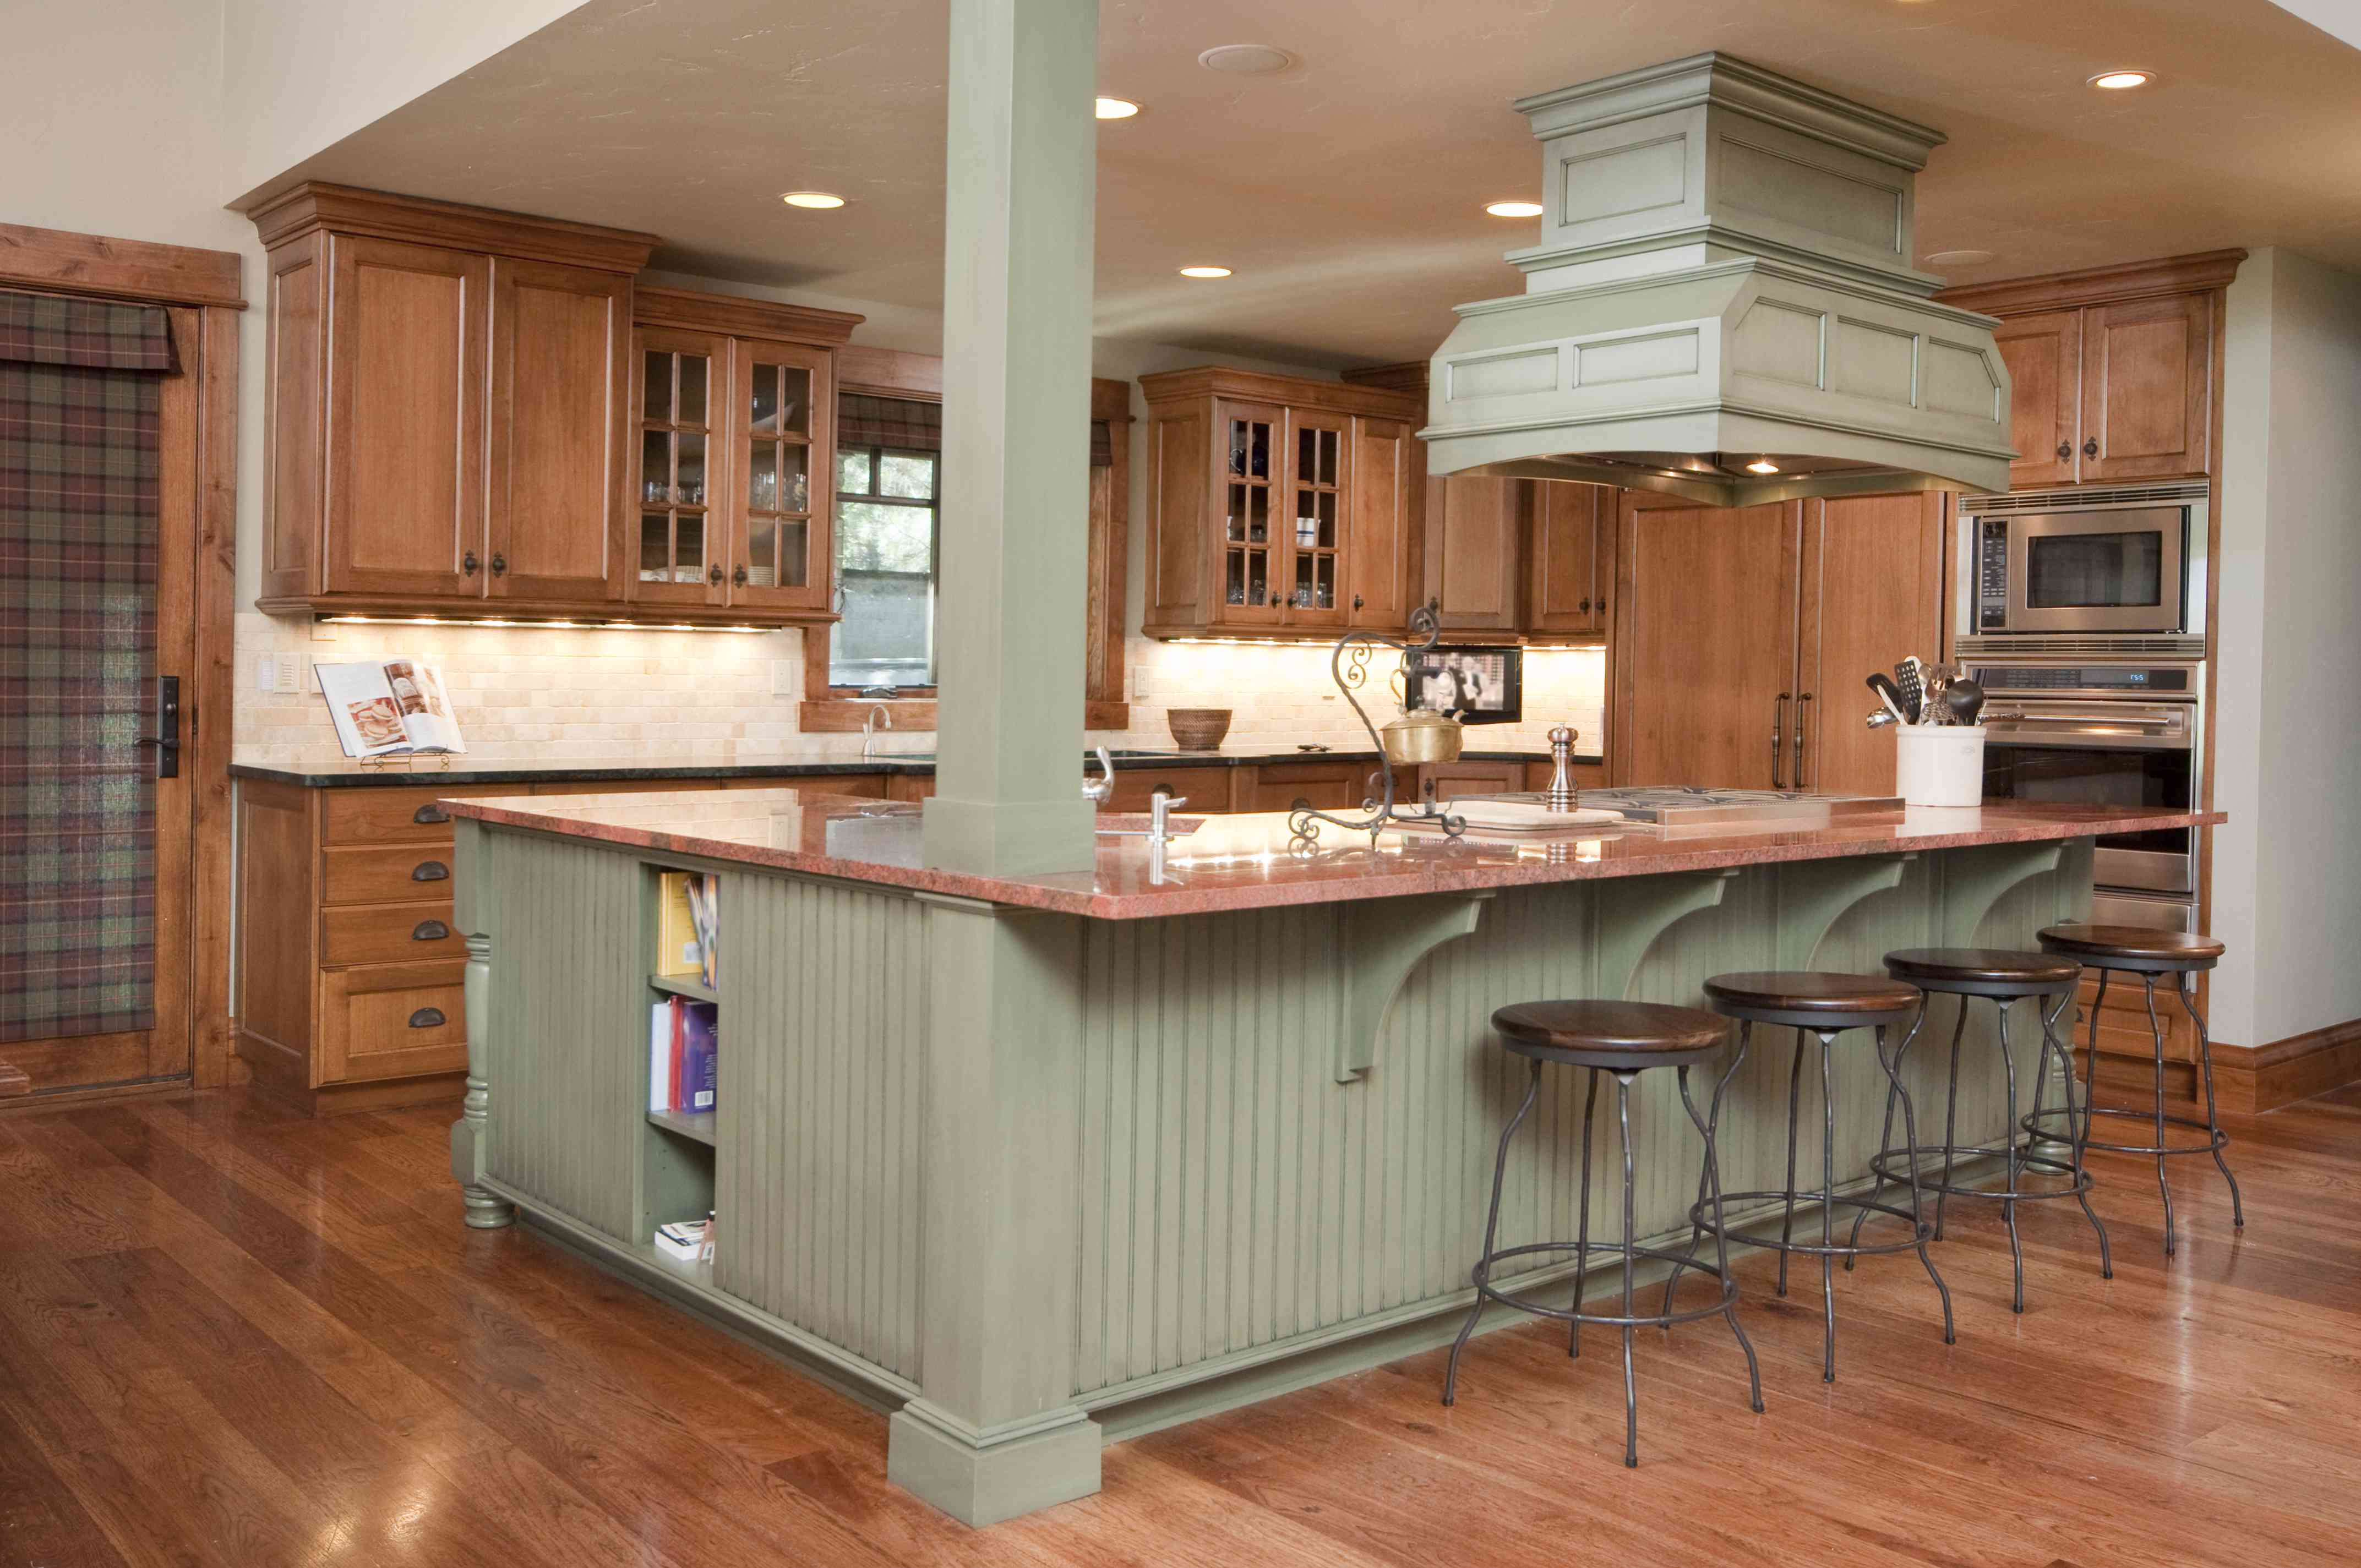 A modern kitchen with an island seating area